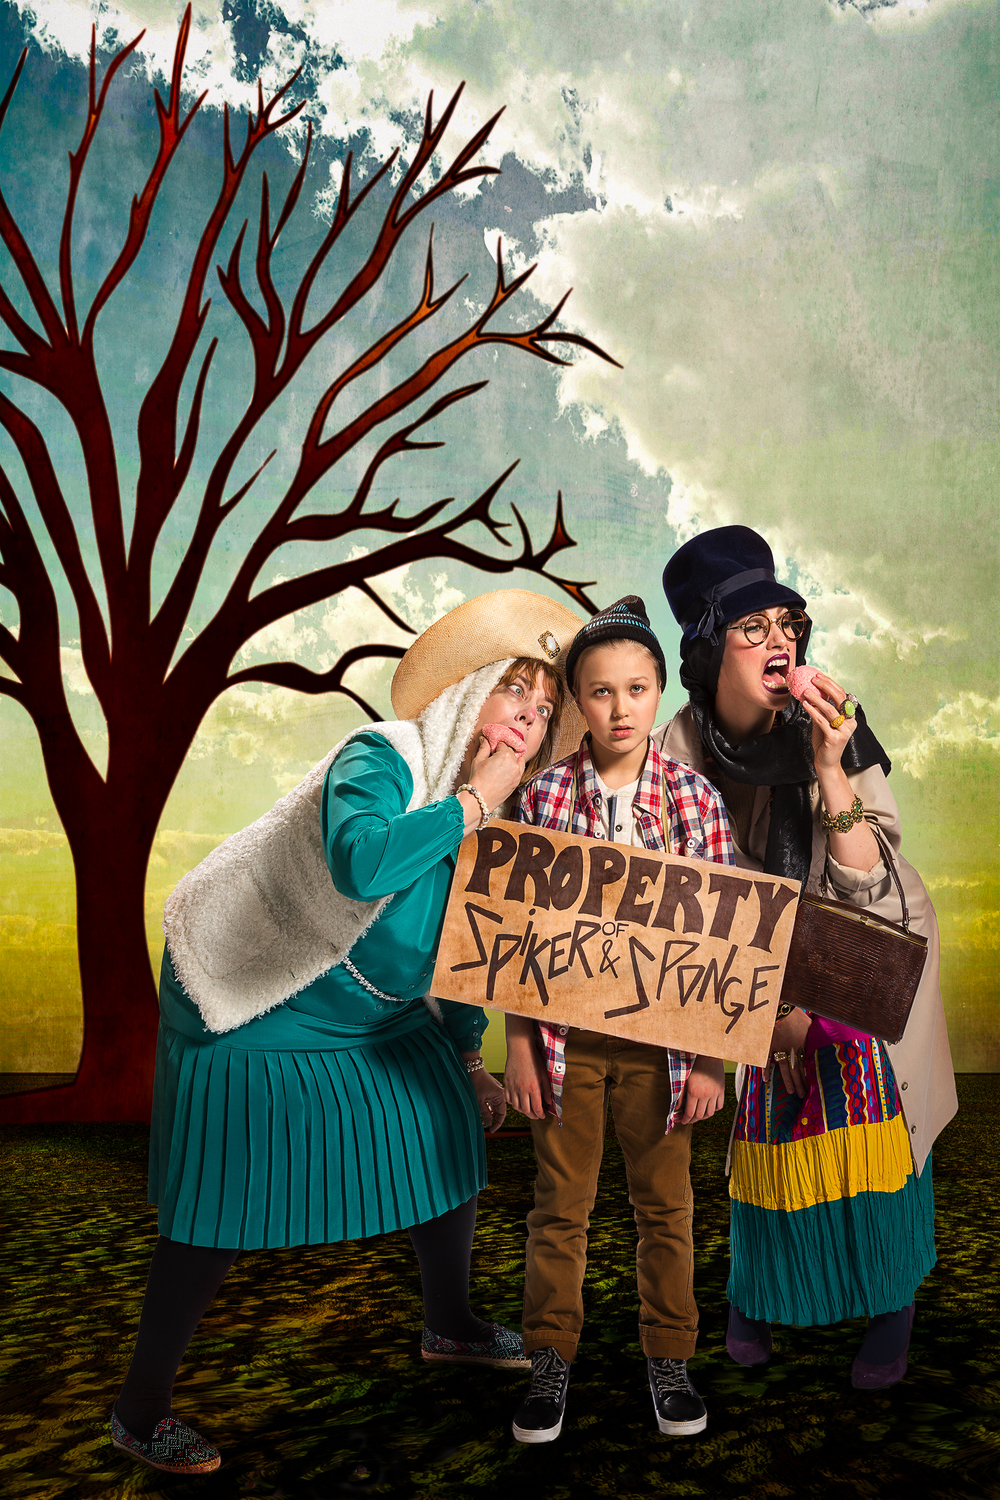 Victoria Blake as Sponge, Aida Valentine as James, and Stephanie Leppert as Spiker.